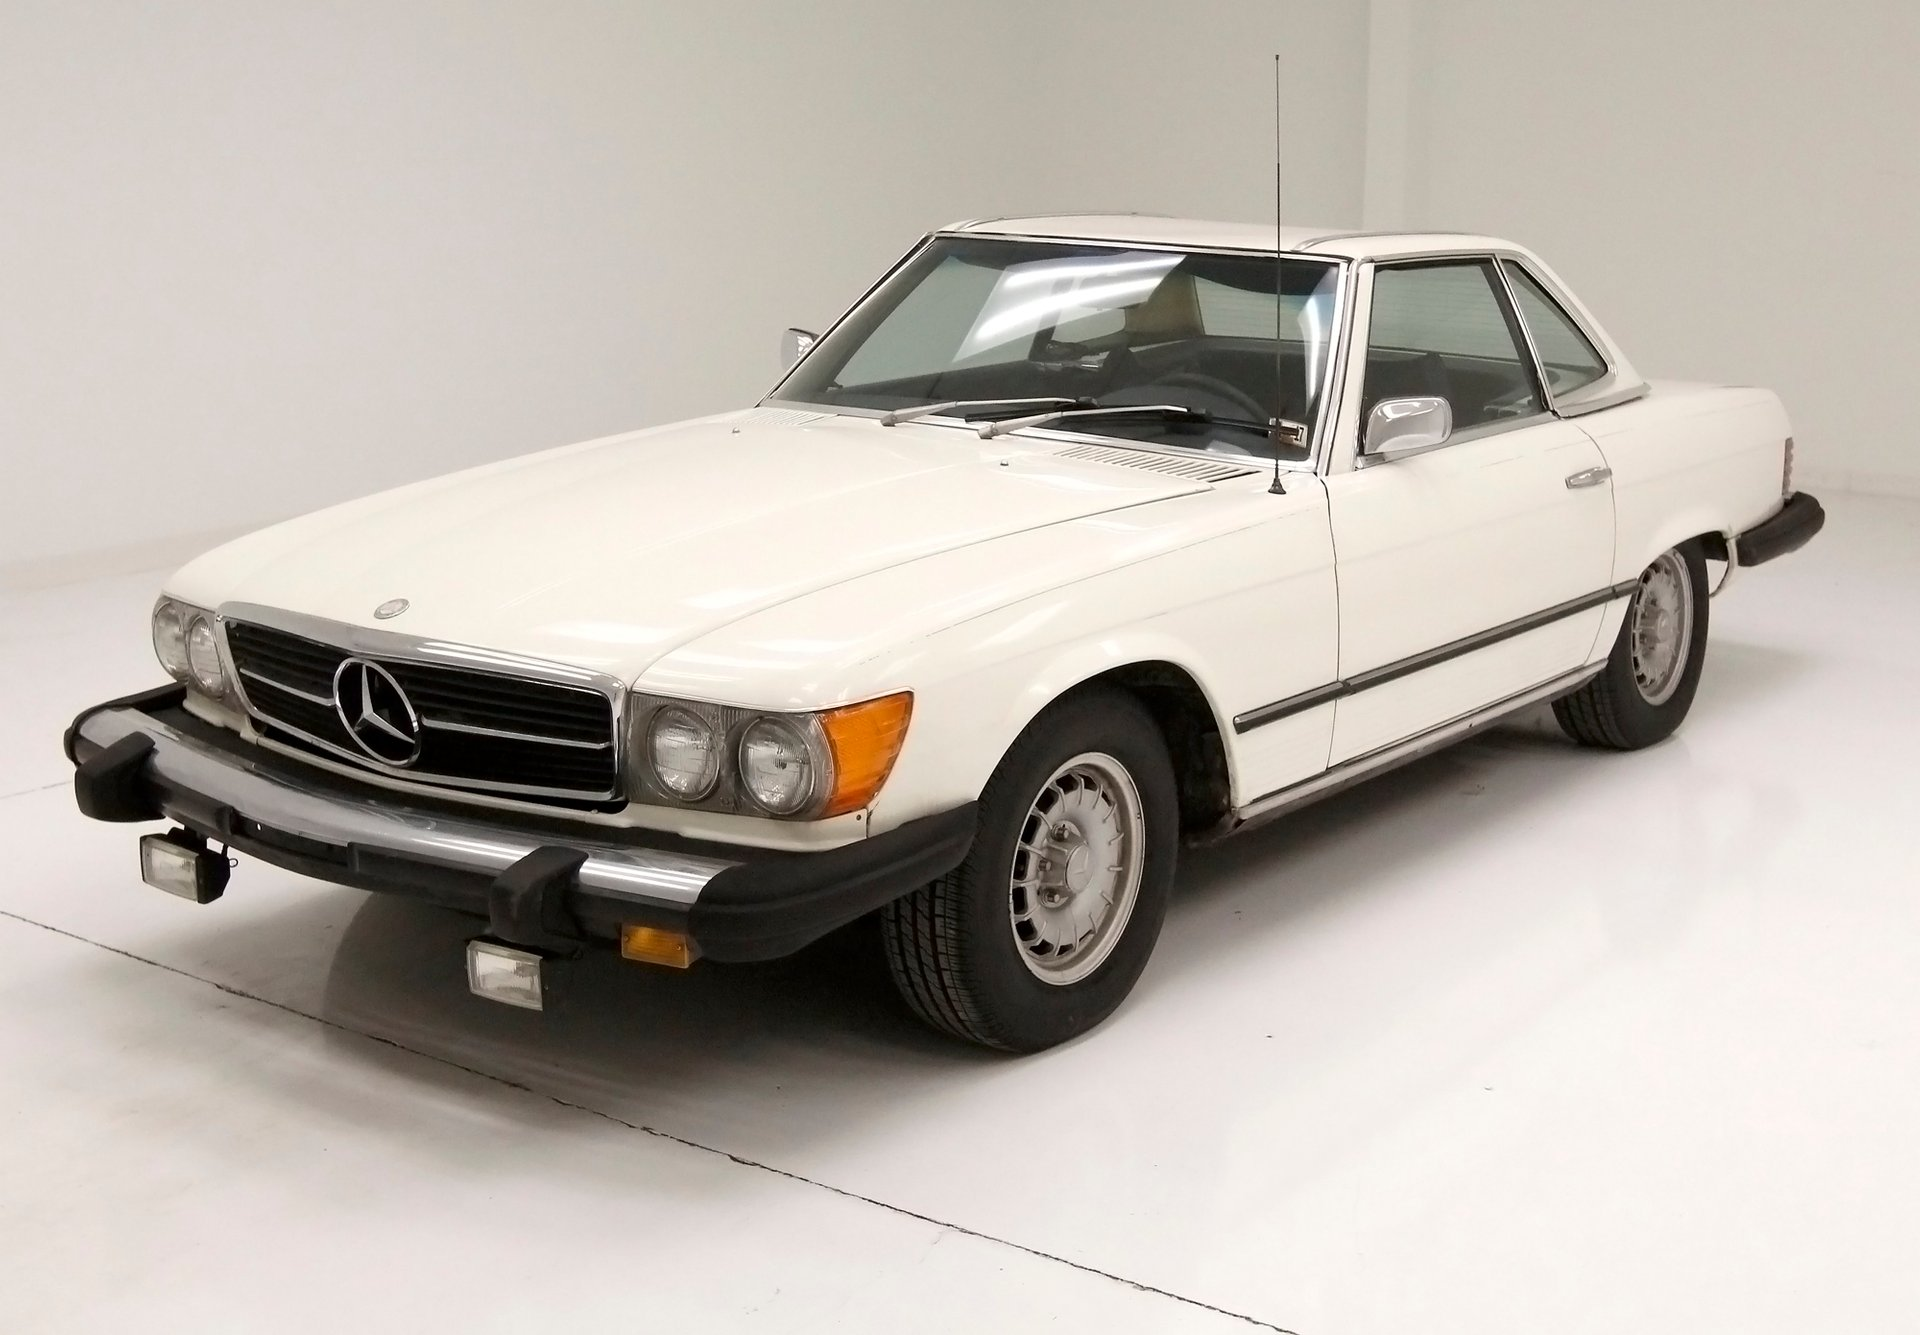 1974 Mercedes-Benz 450SL